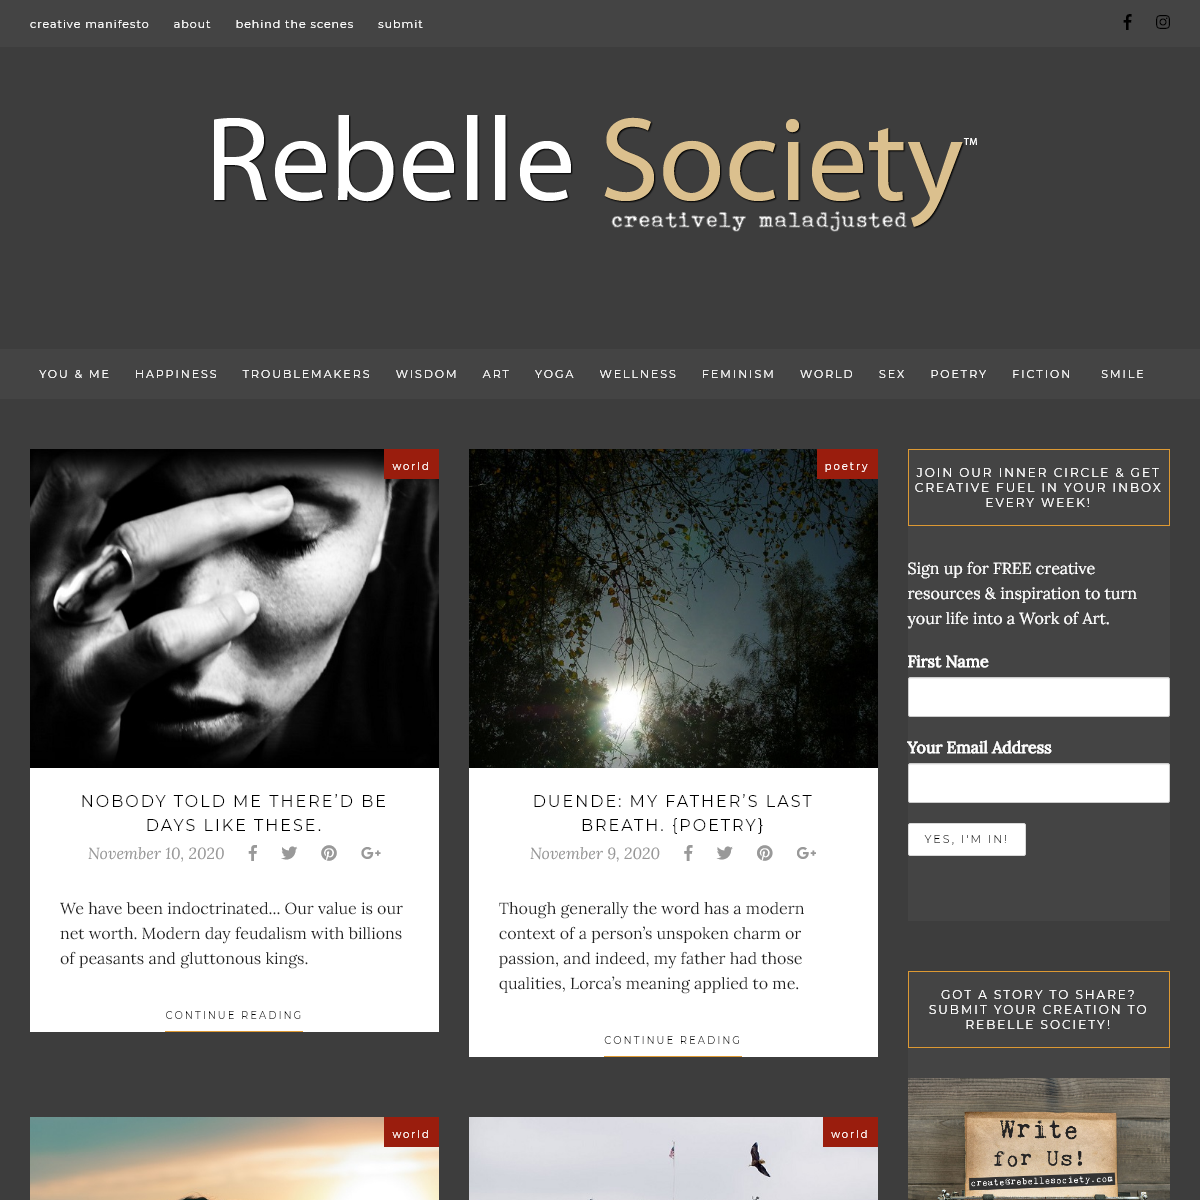 Rebelle Society - for the creatively maladjusted